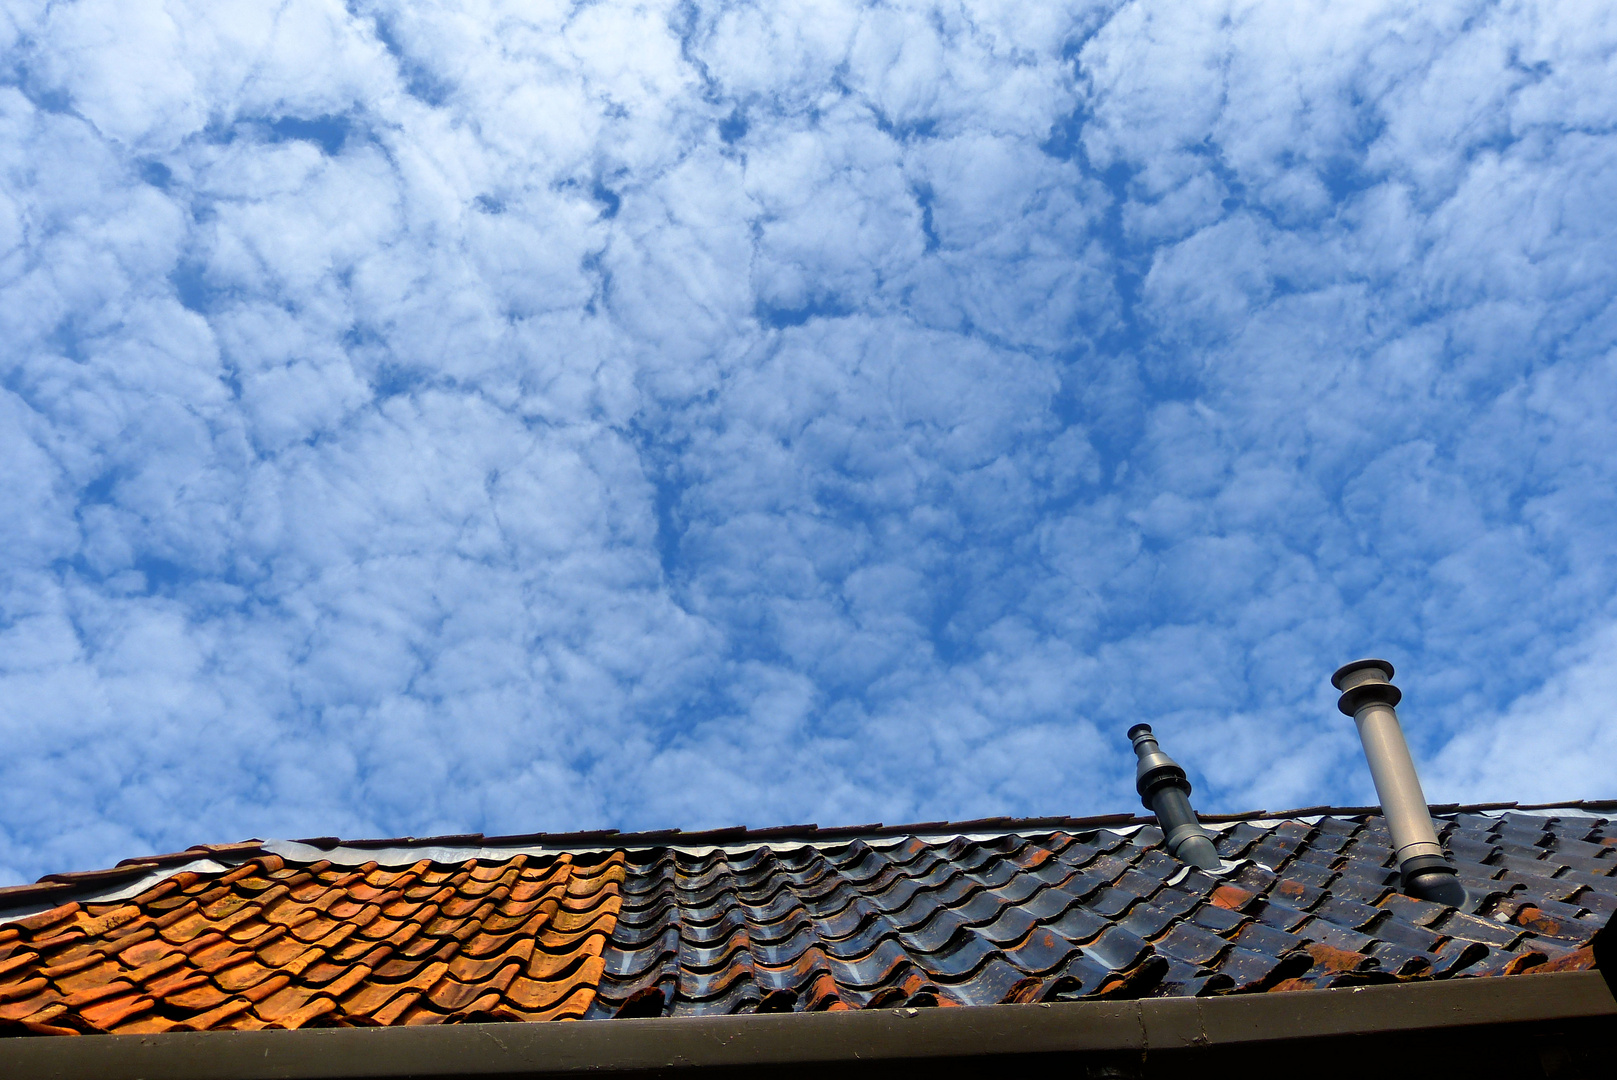 Clouds over the rustic roof